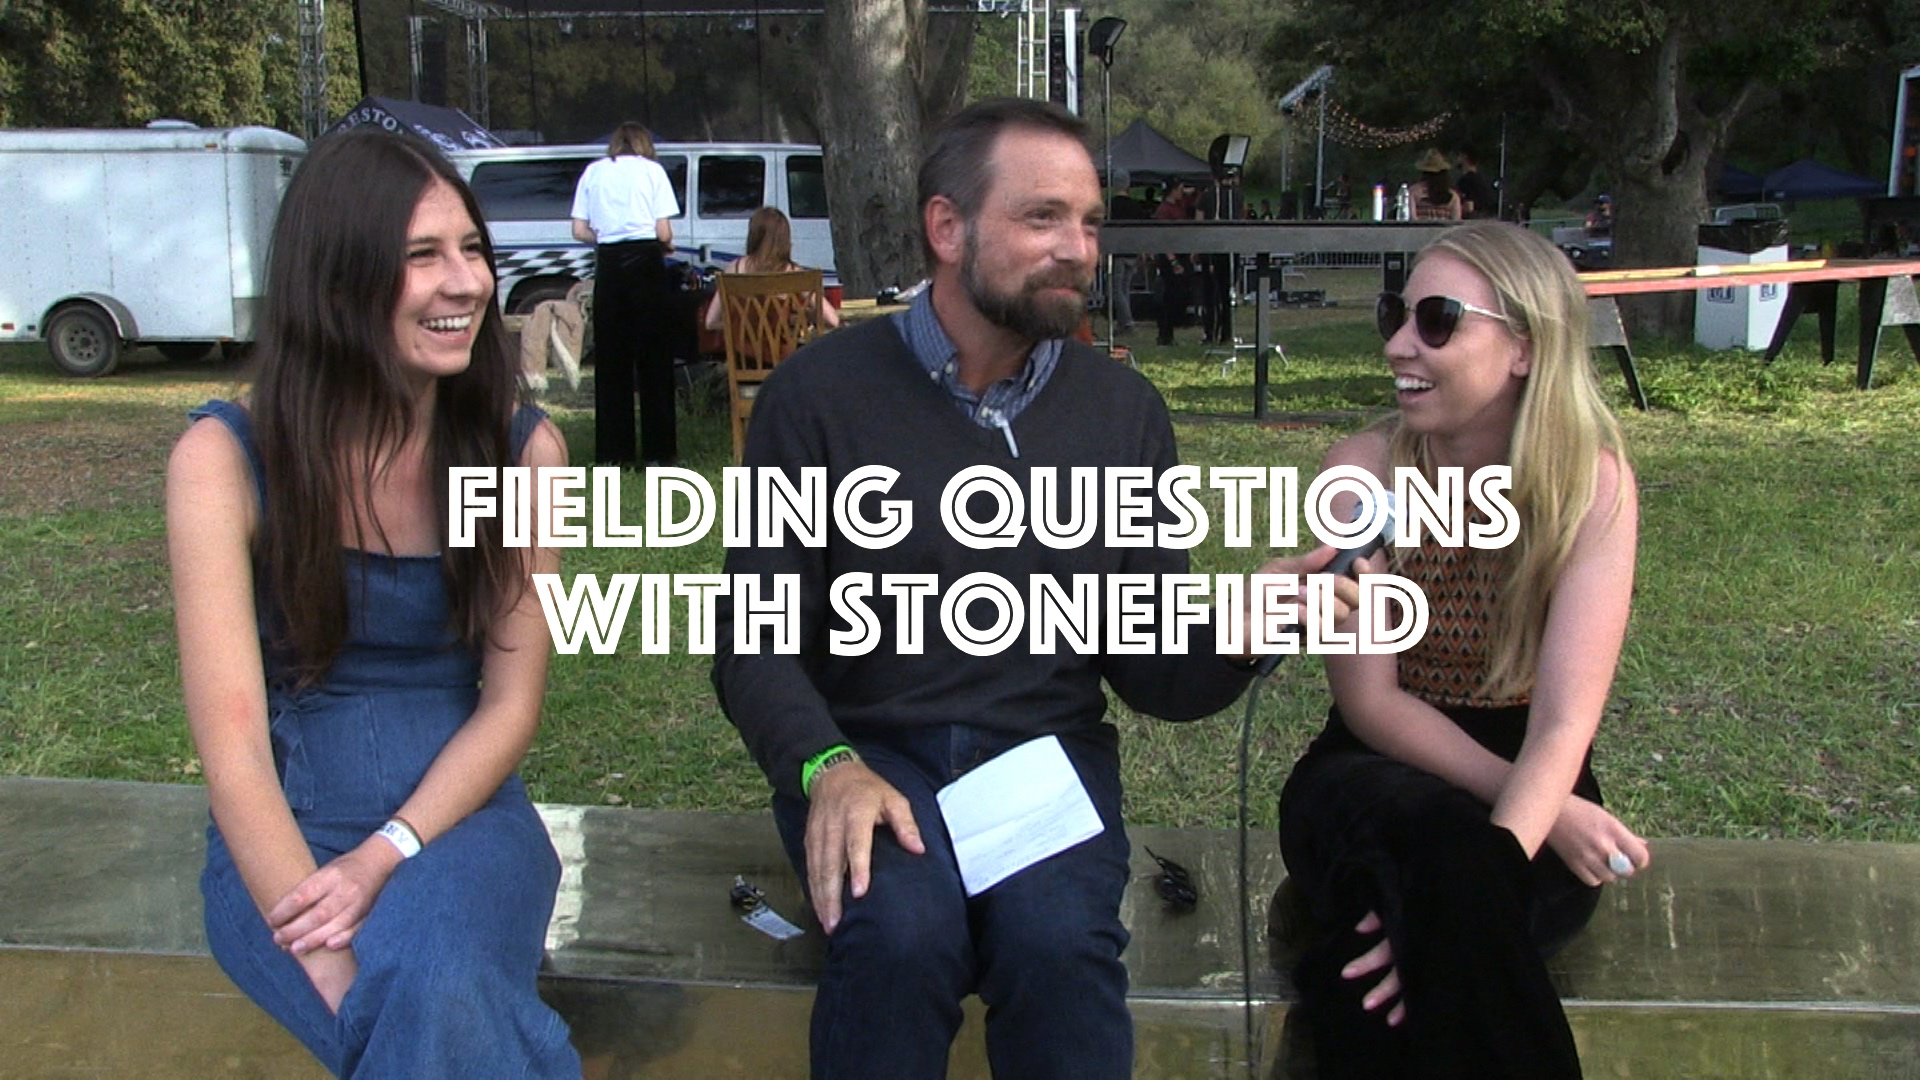 Fielding-Questions-With-Stonefield YouTube